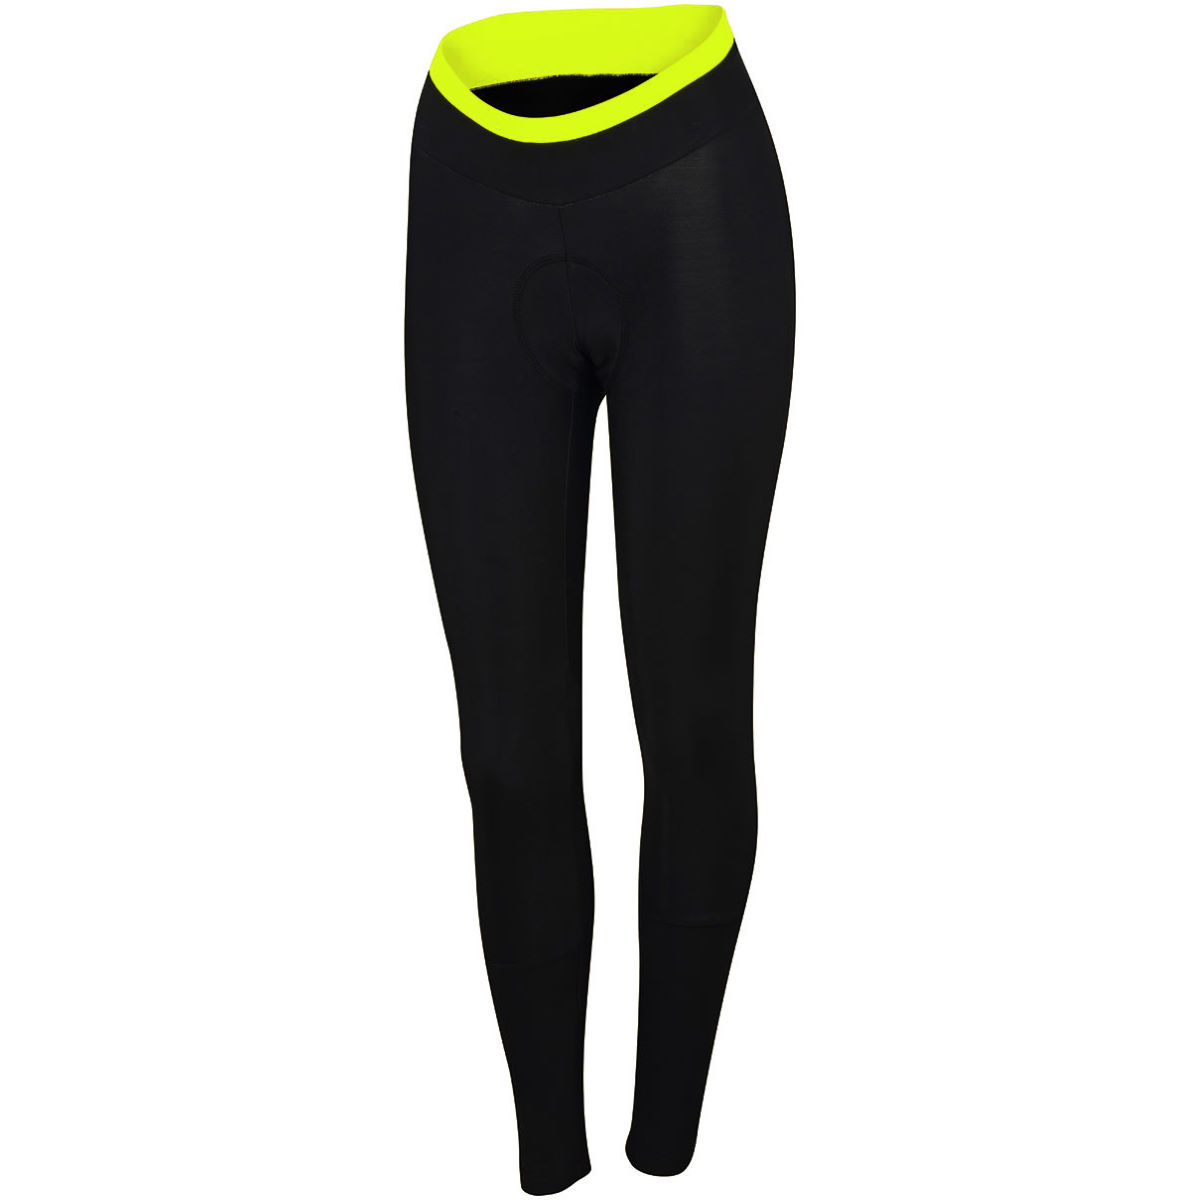 Cuissard long Femme Sportful Luna Thermal - XS Black/Yellow Fluo